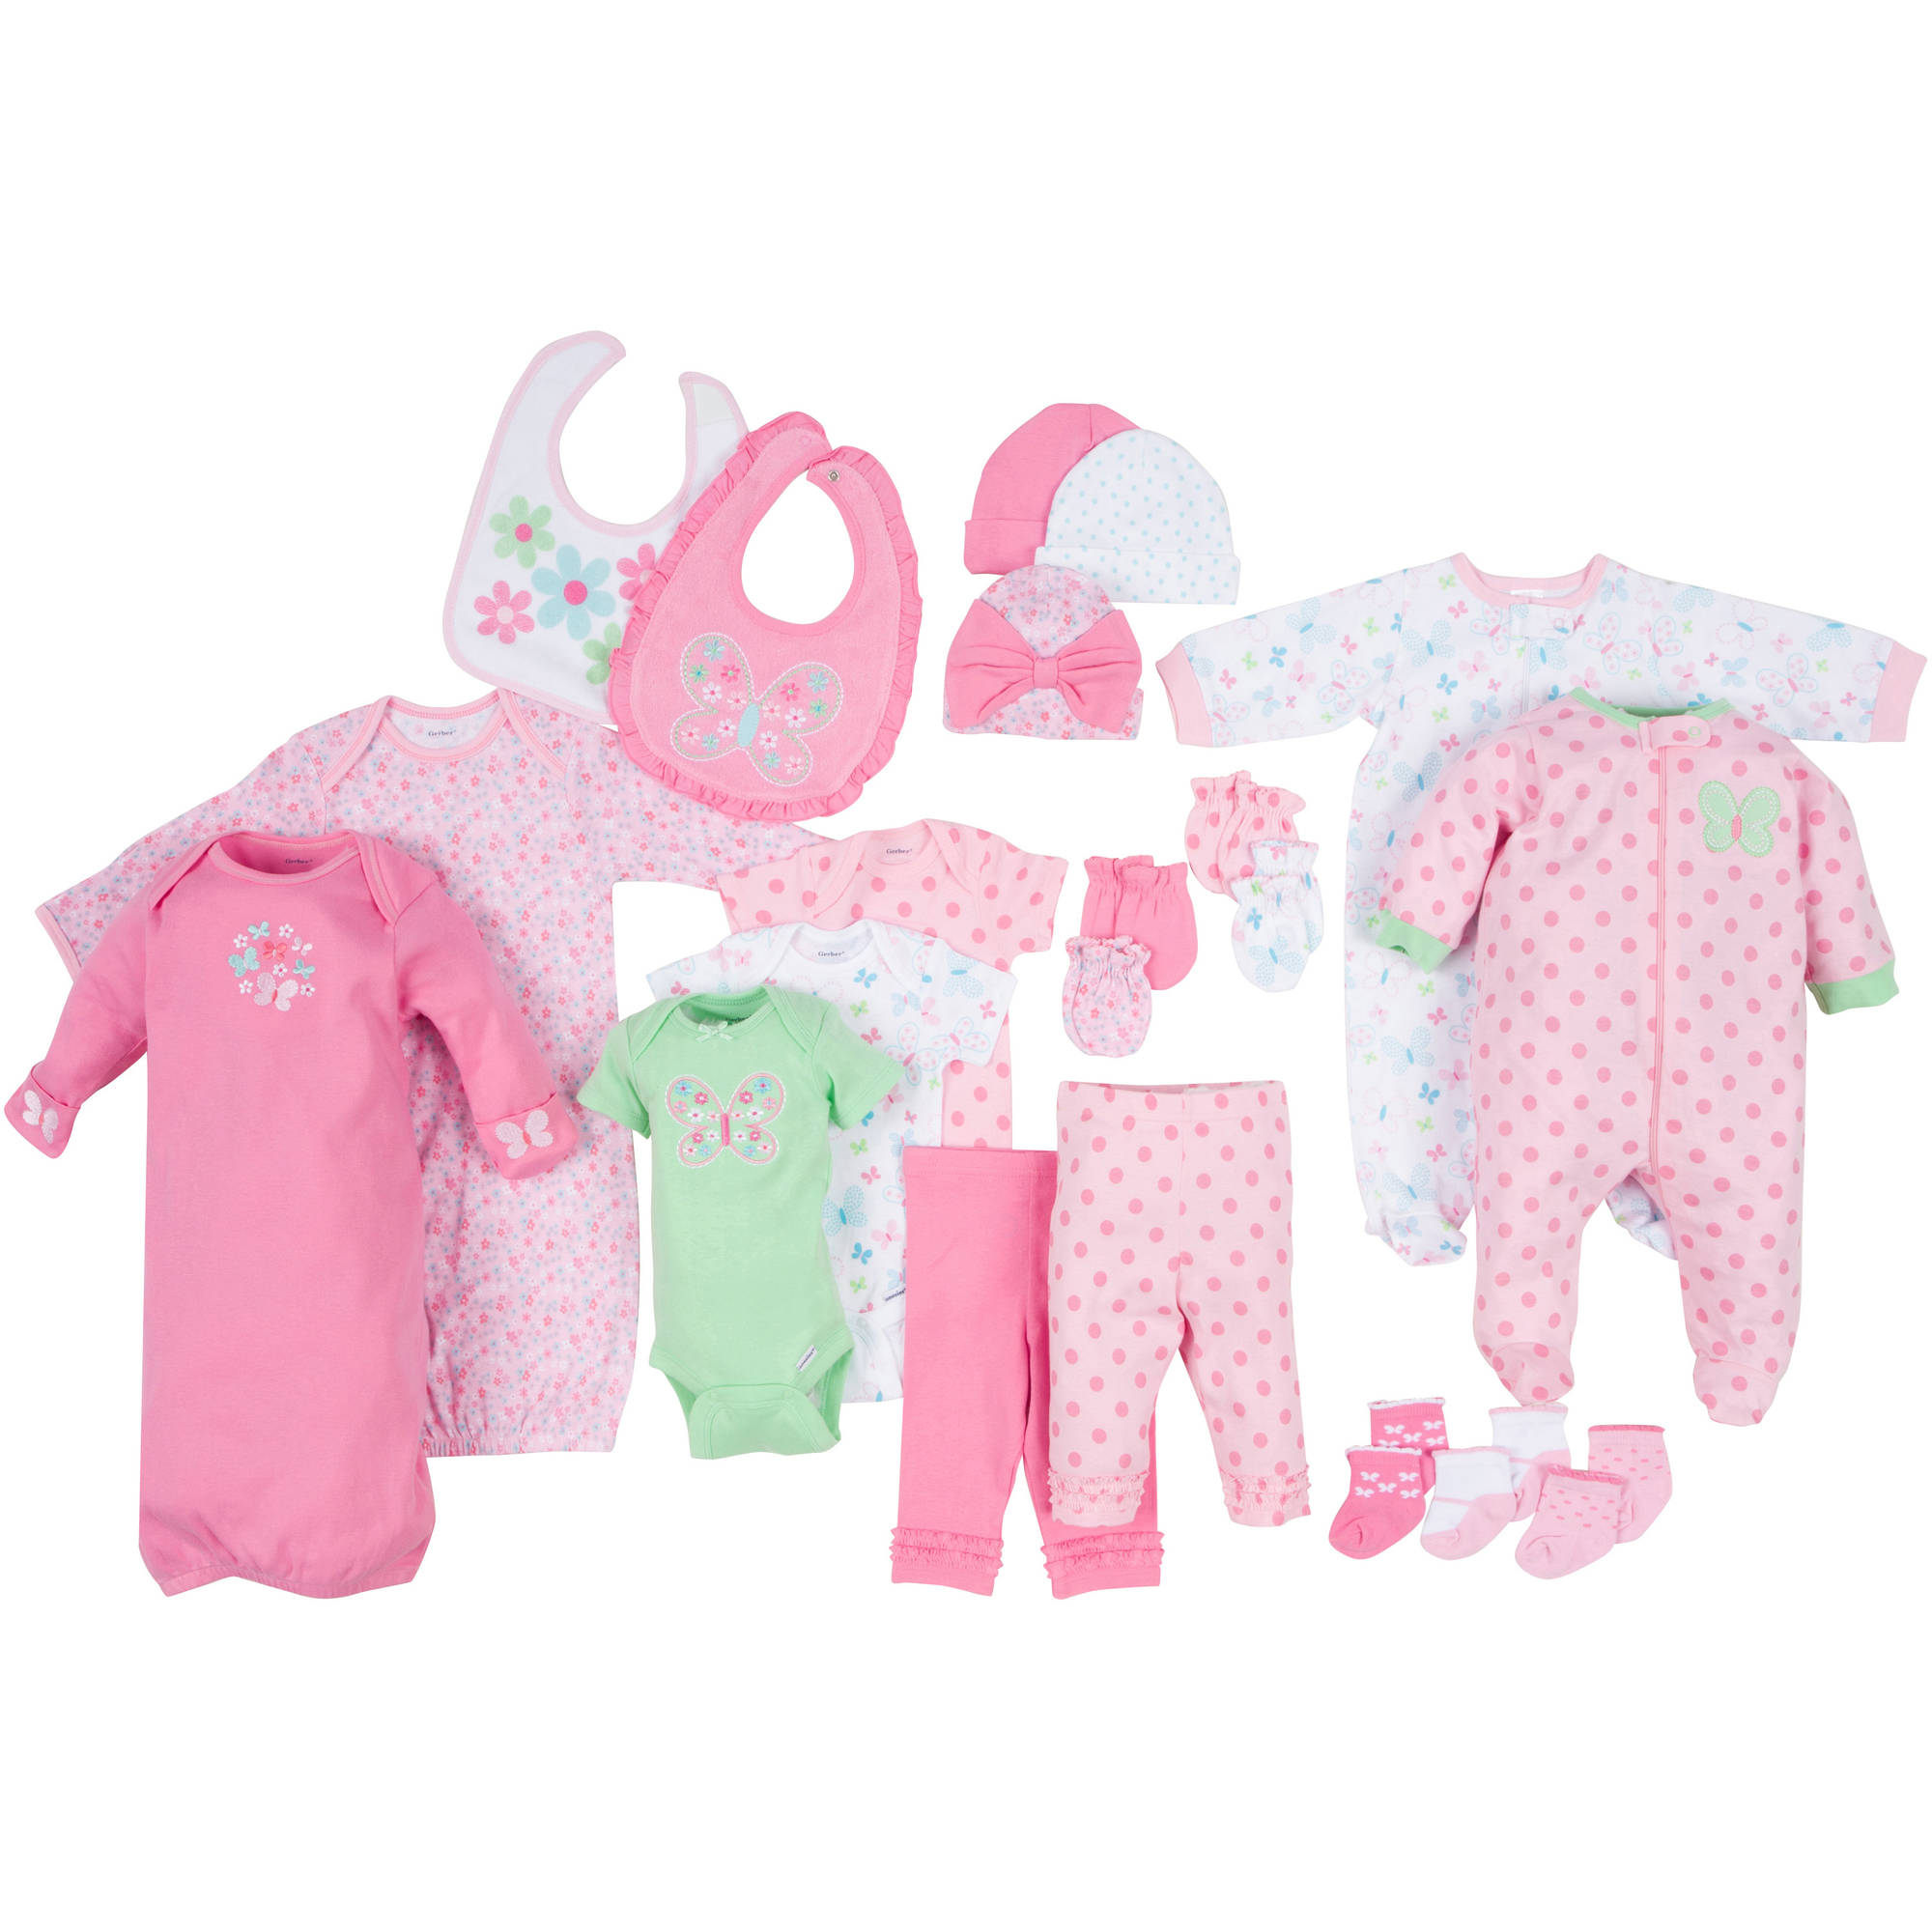 Gerber Newborn Baby Girl Perfect Baby Shower Gift 22-Piece Layette Set, Age 0-3M